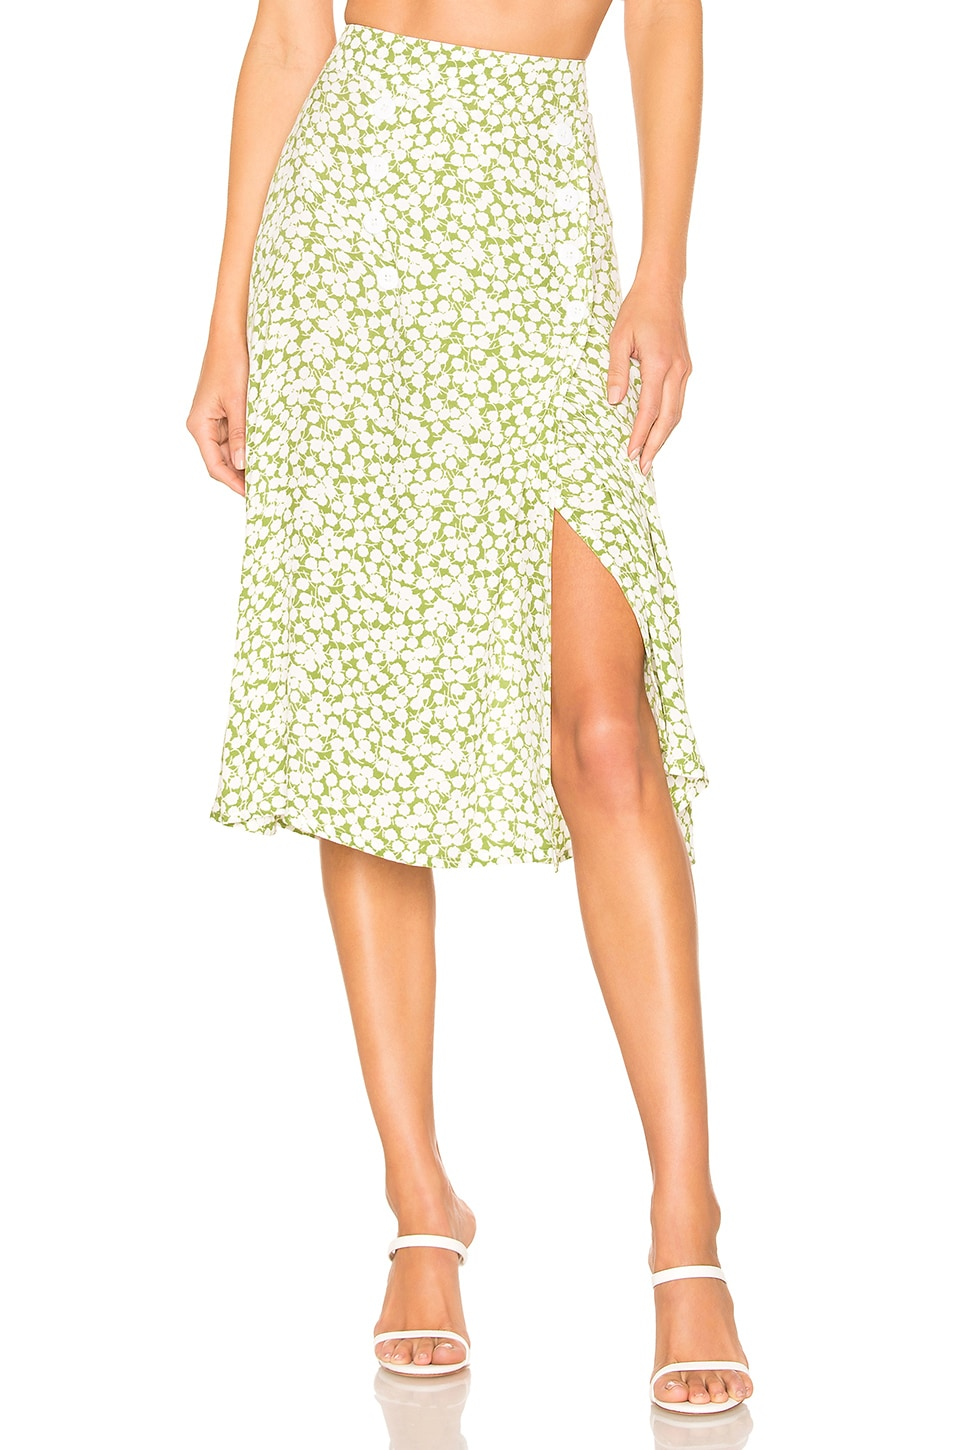 FAITHFULL THE BRAND Maya Skirt in Avocado Green Bella Floral